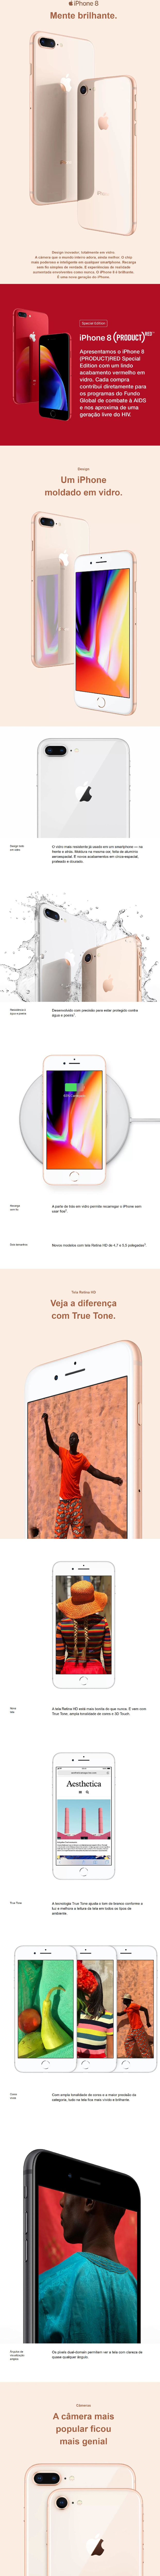 Iphone 8 dourado 64gb novo